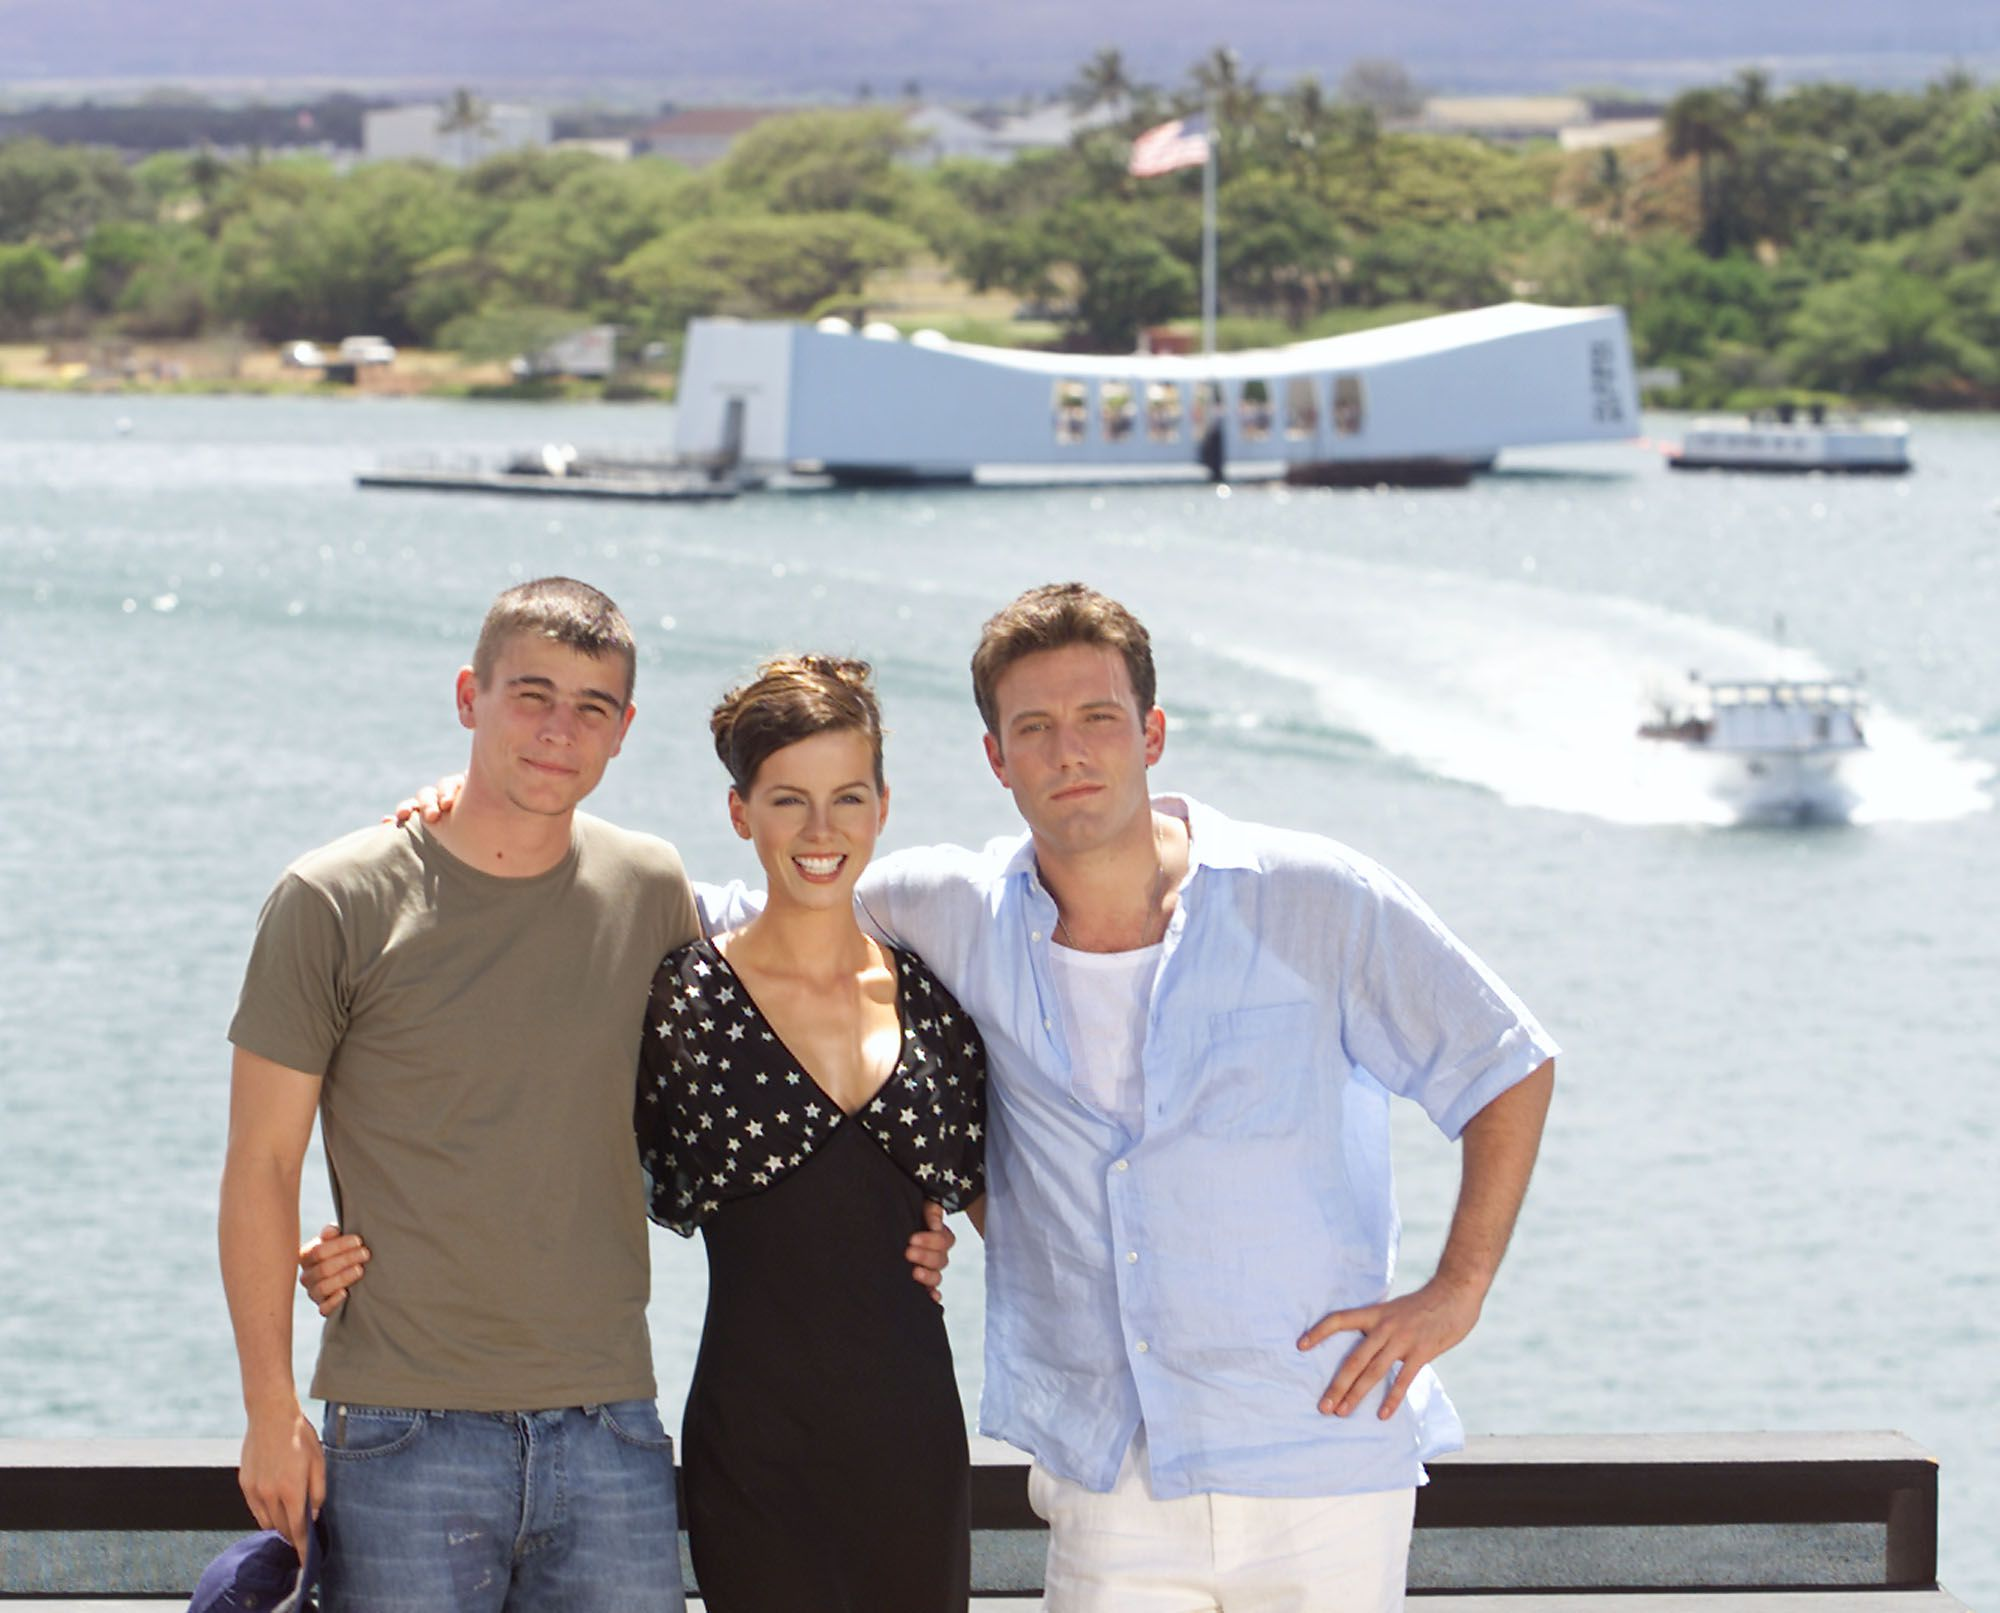 Pearl Harbor Movie Cast The Making of the Film...